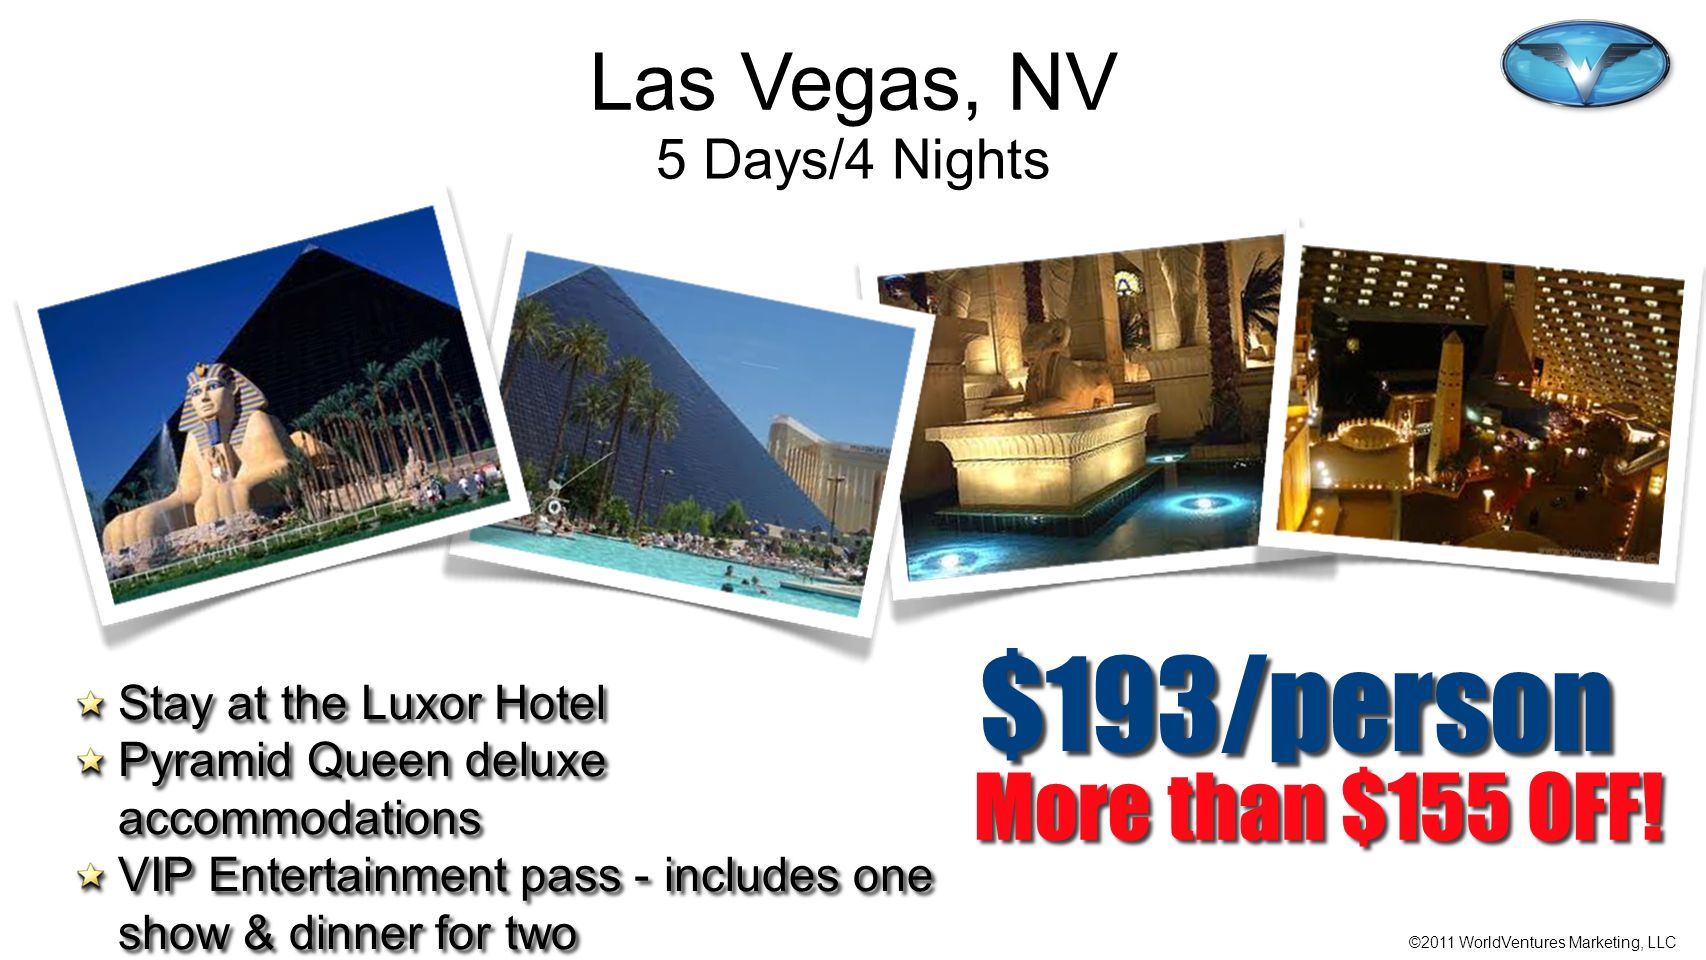 $193/person More than $155 OFF! Las Vegas, NV 5 Days/4 Nights